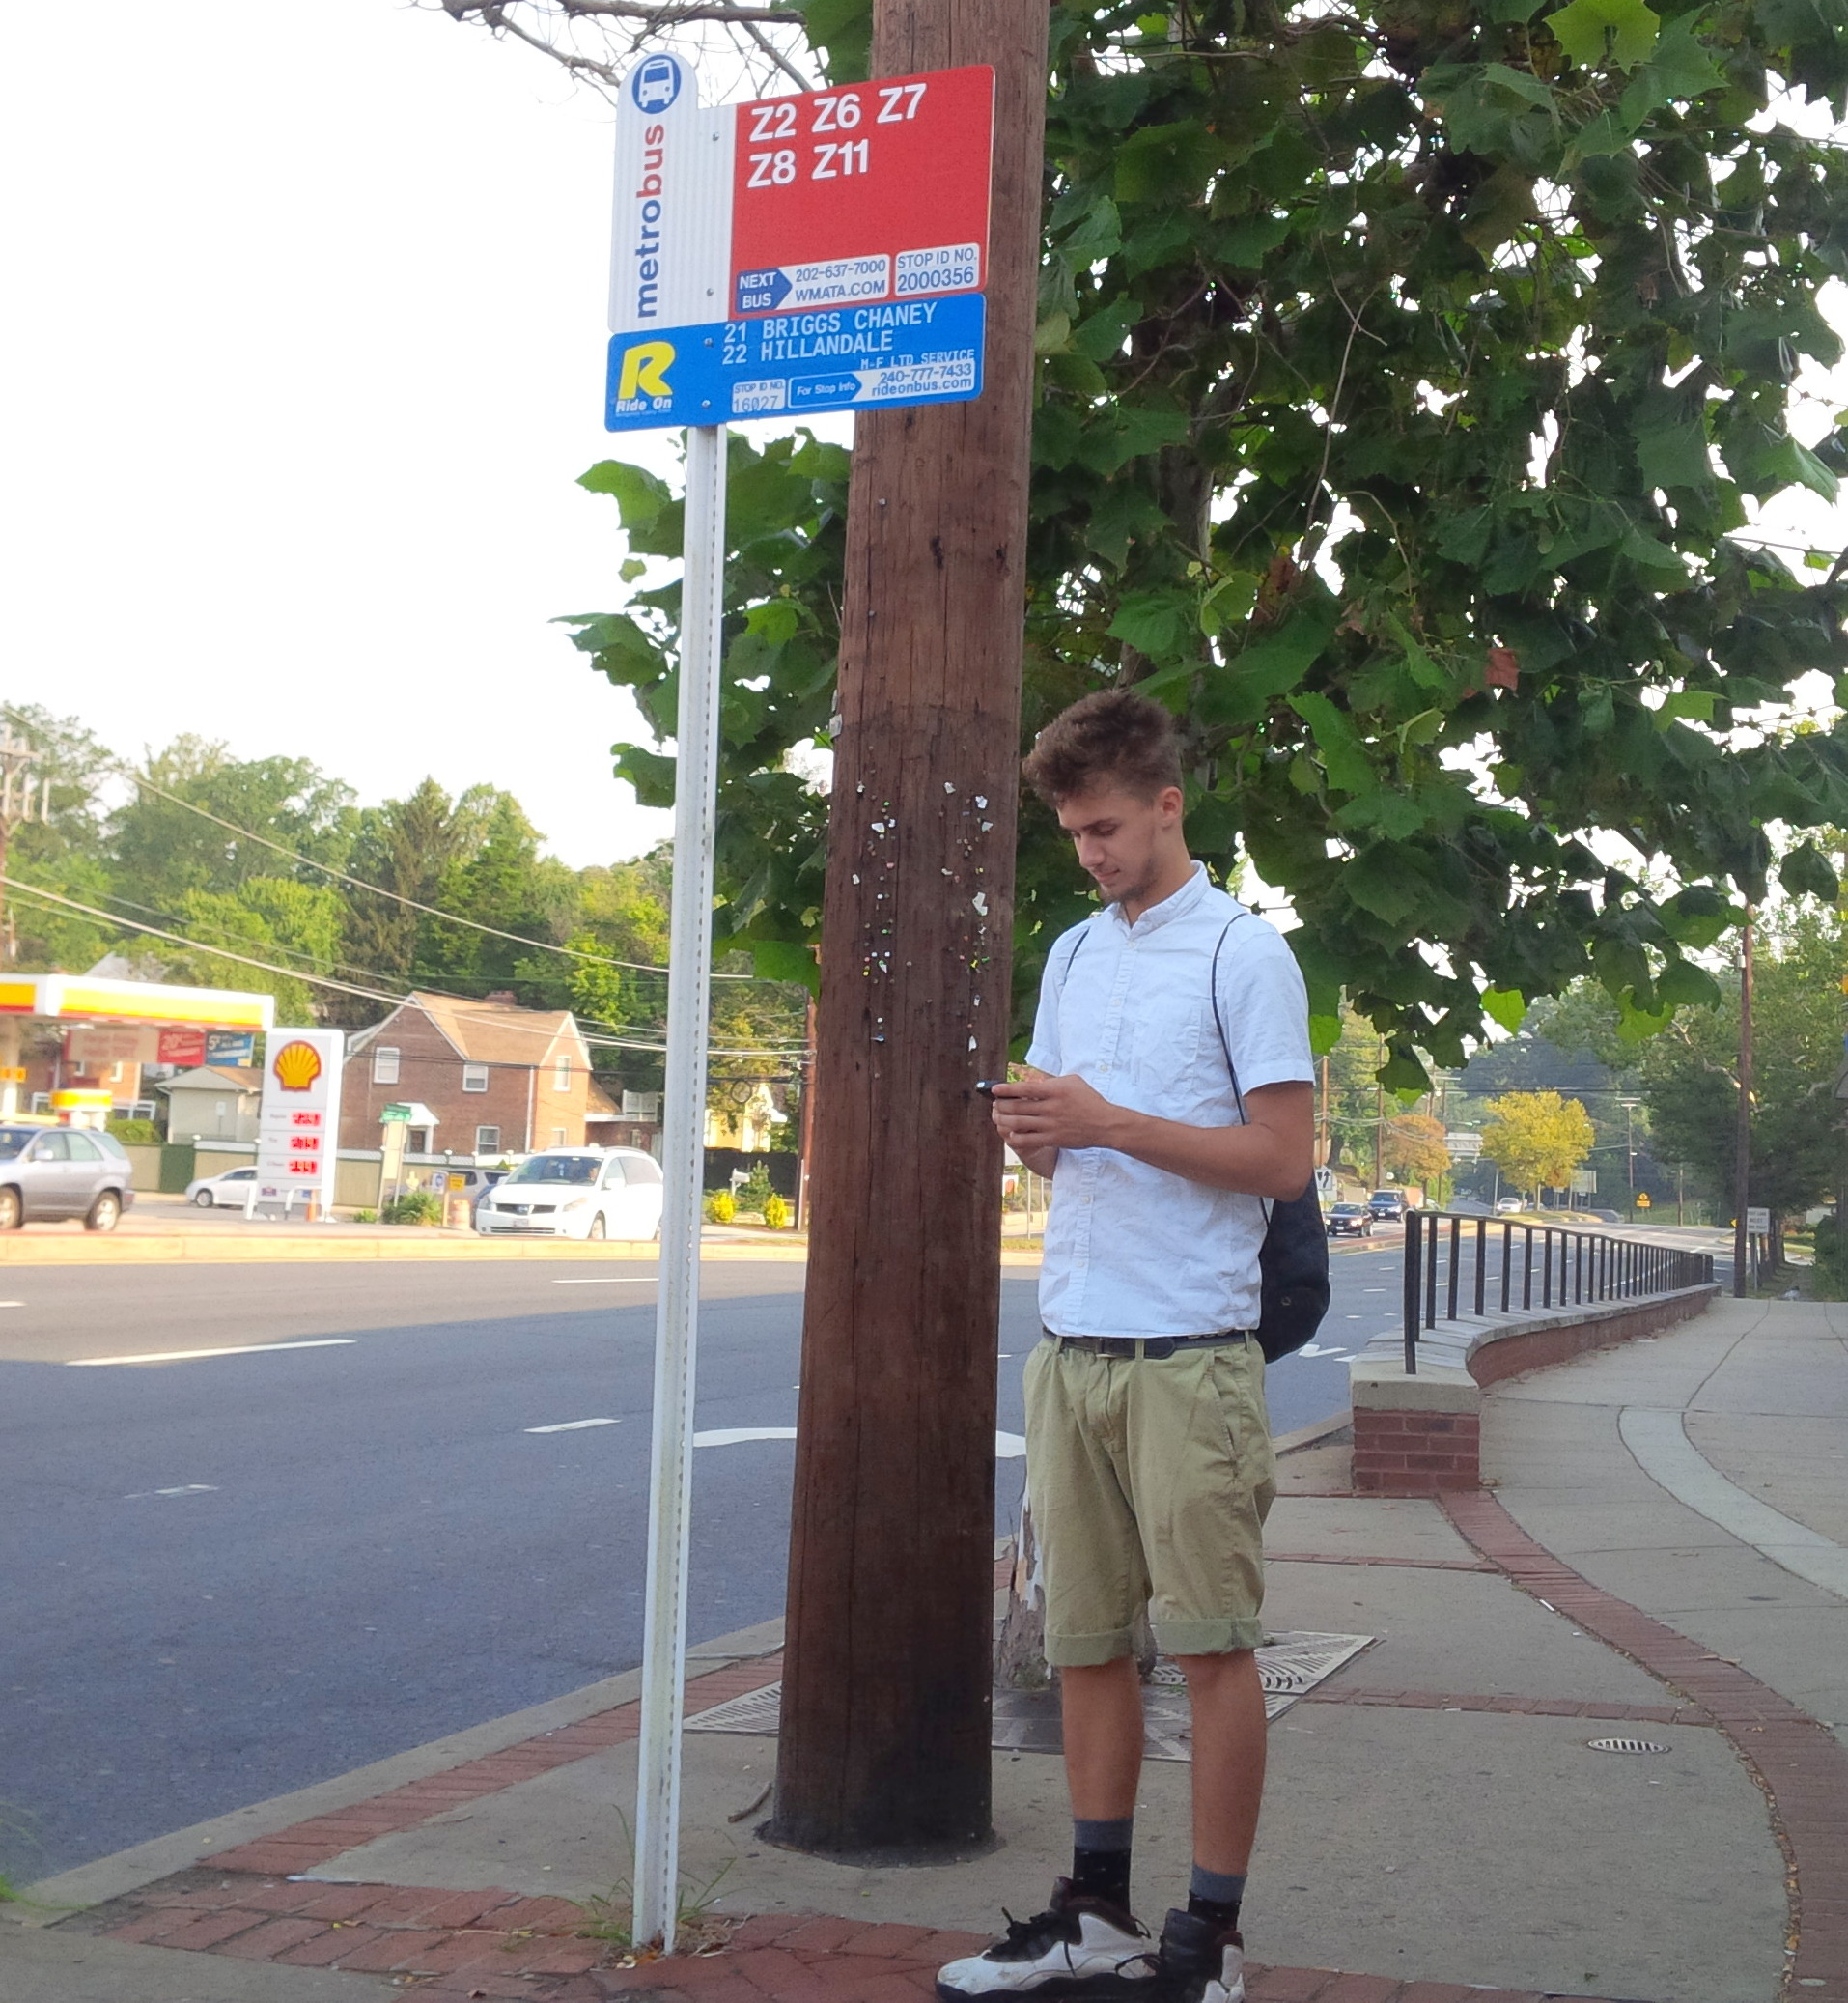 Young man with phone waiting at bus stop